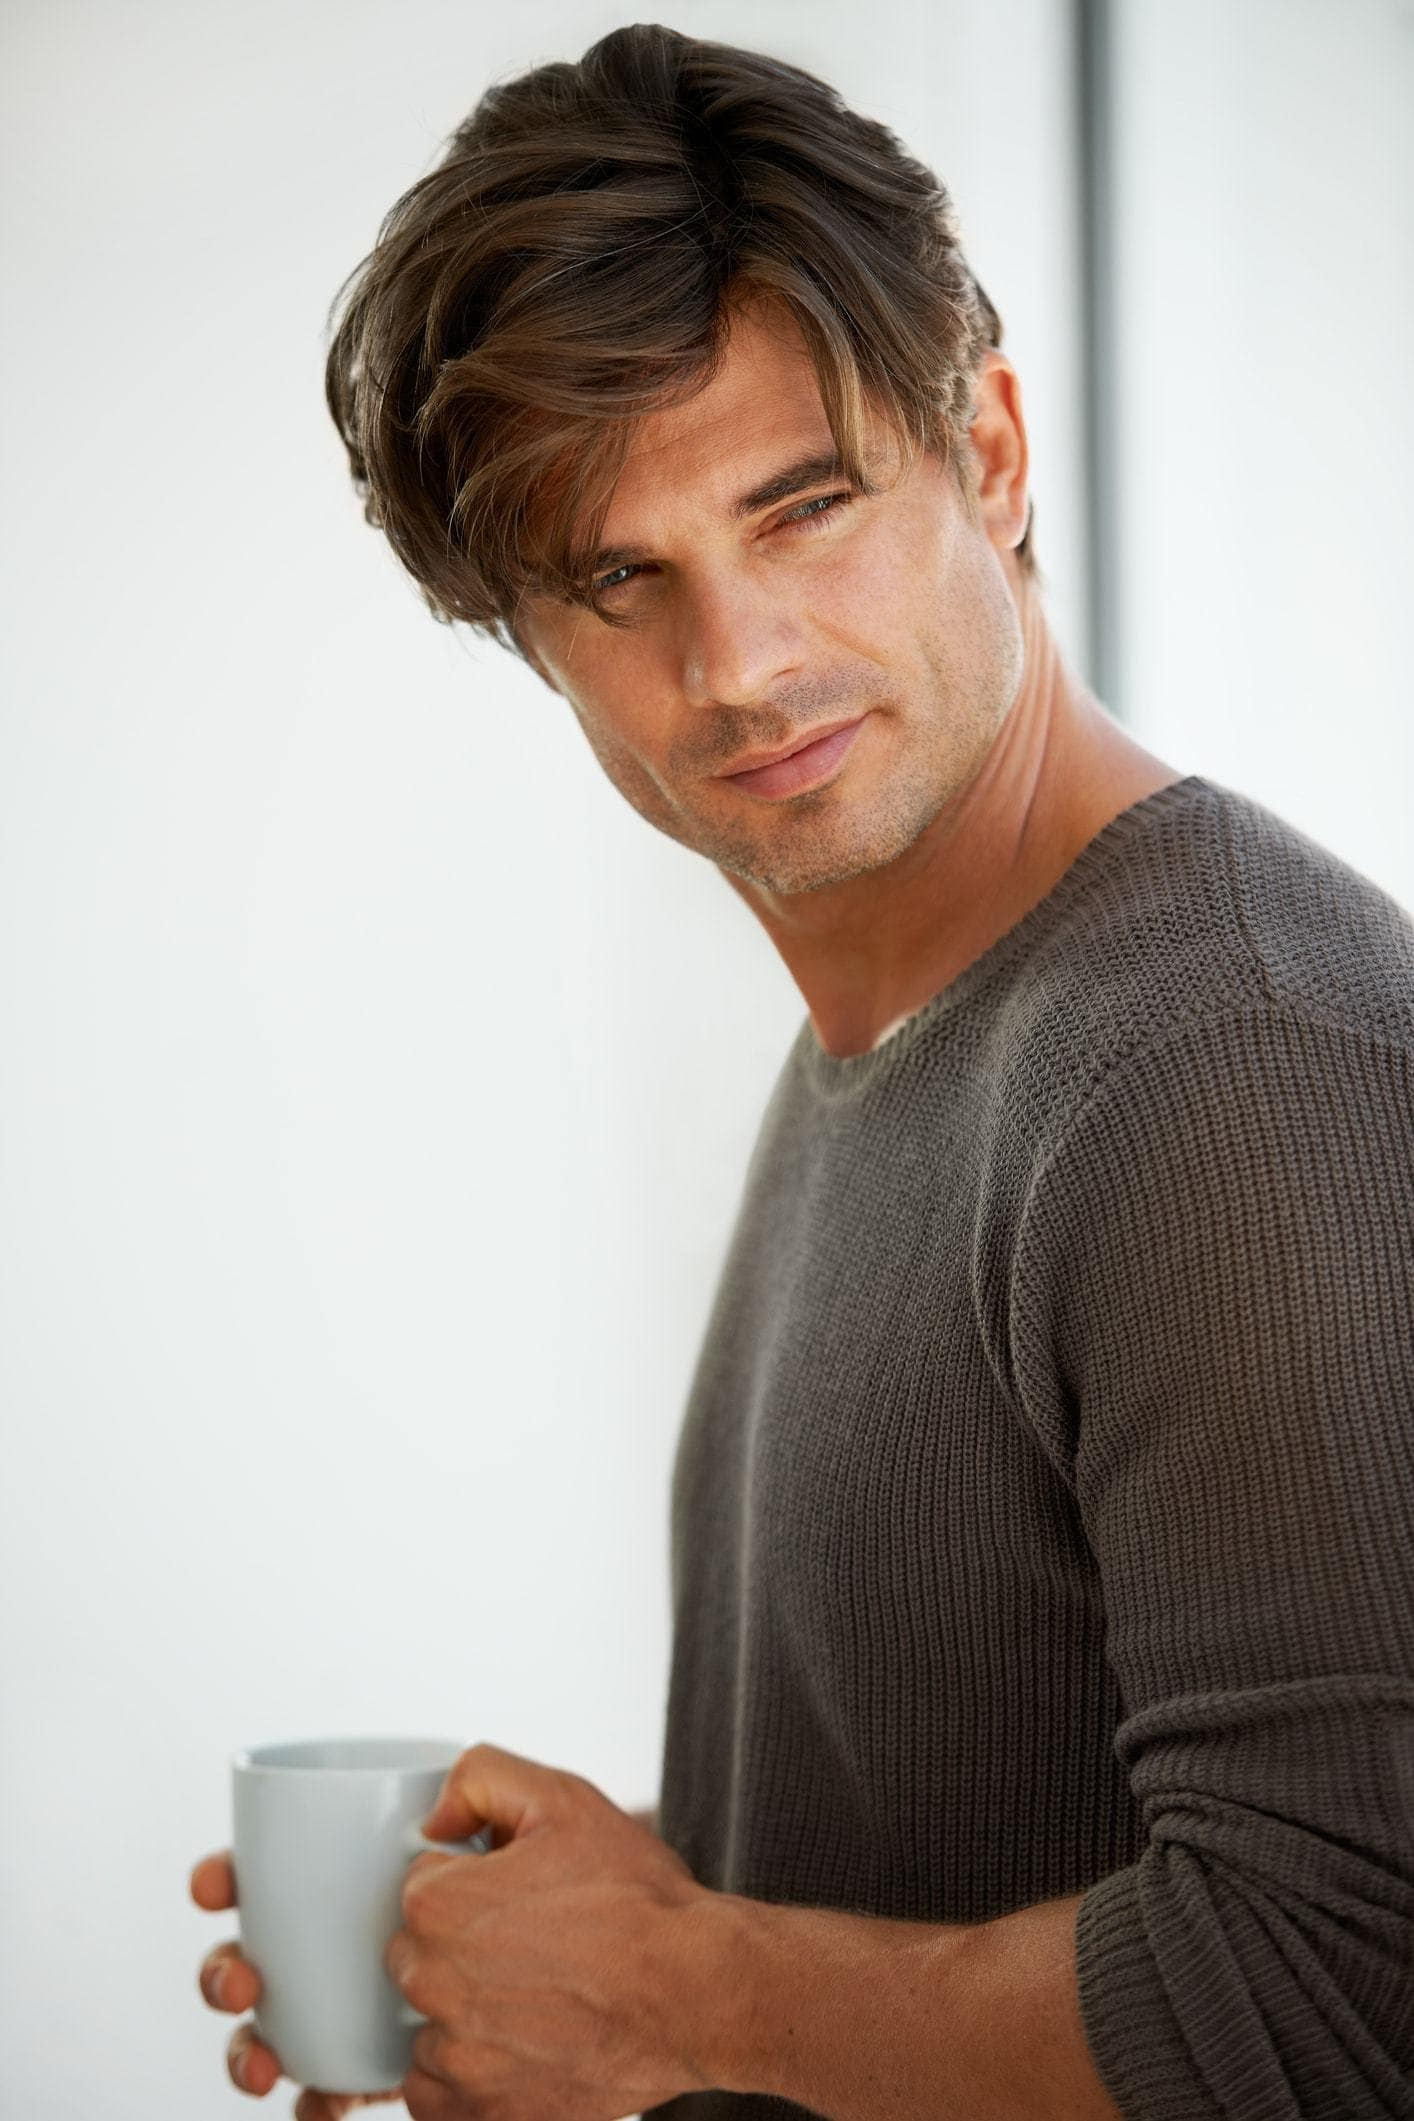 professional haircuts for guys point cut